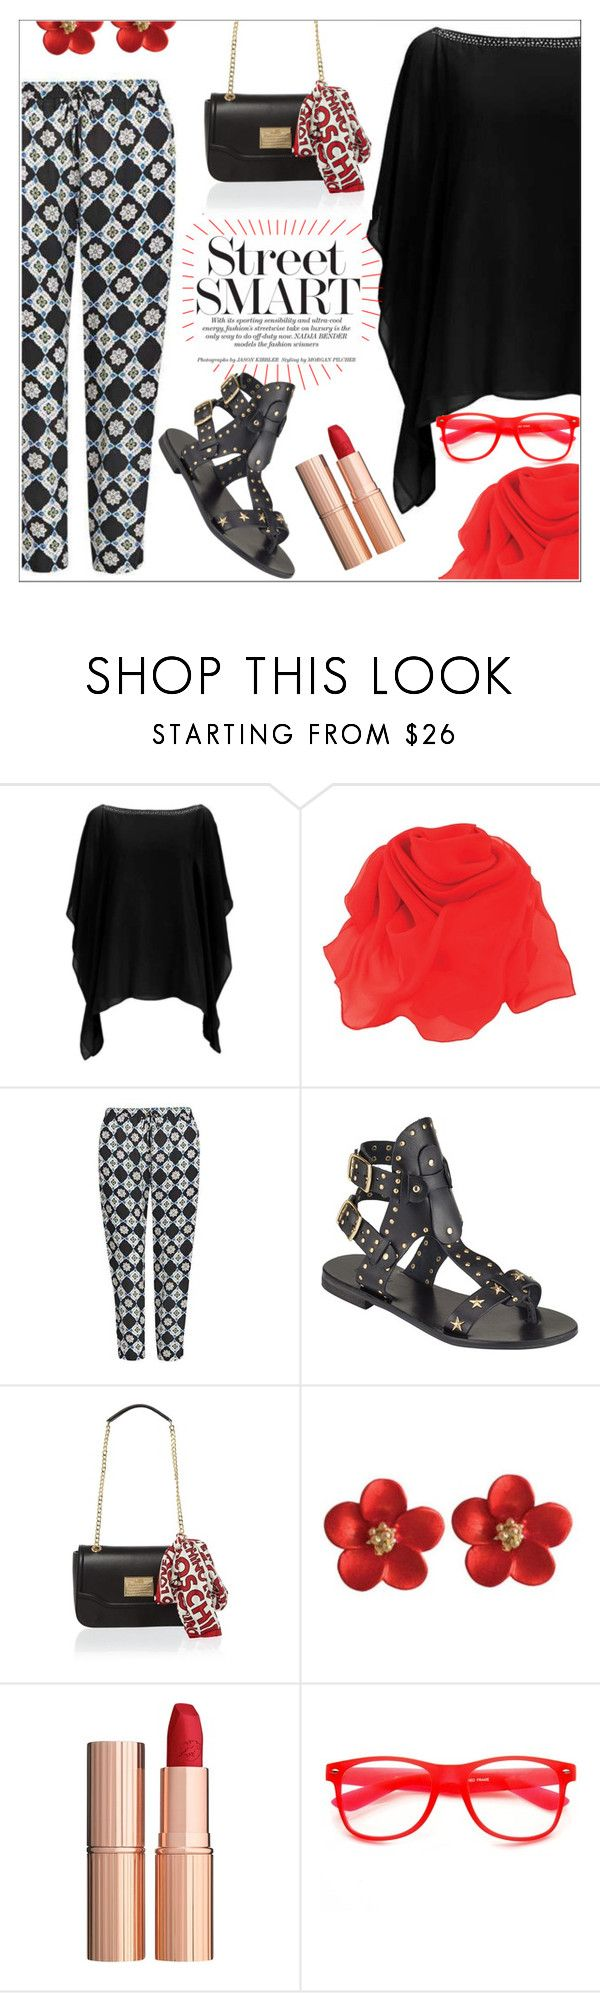 """""""Red x Black"""" by eternal-collection ❤ liked on Polyvore featuring Somerset by Alice Temperley, Love Moschino and Charlotte Tilbury"""